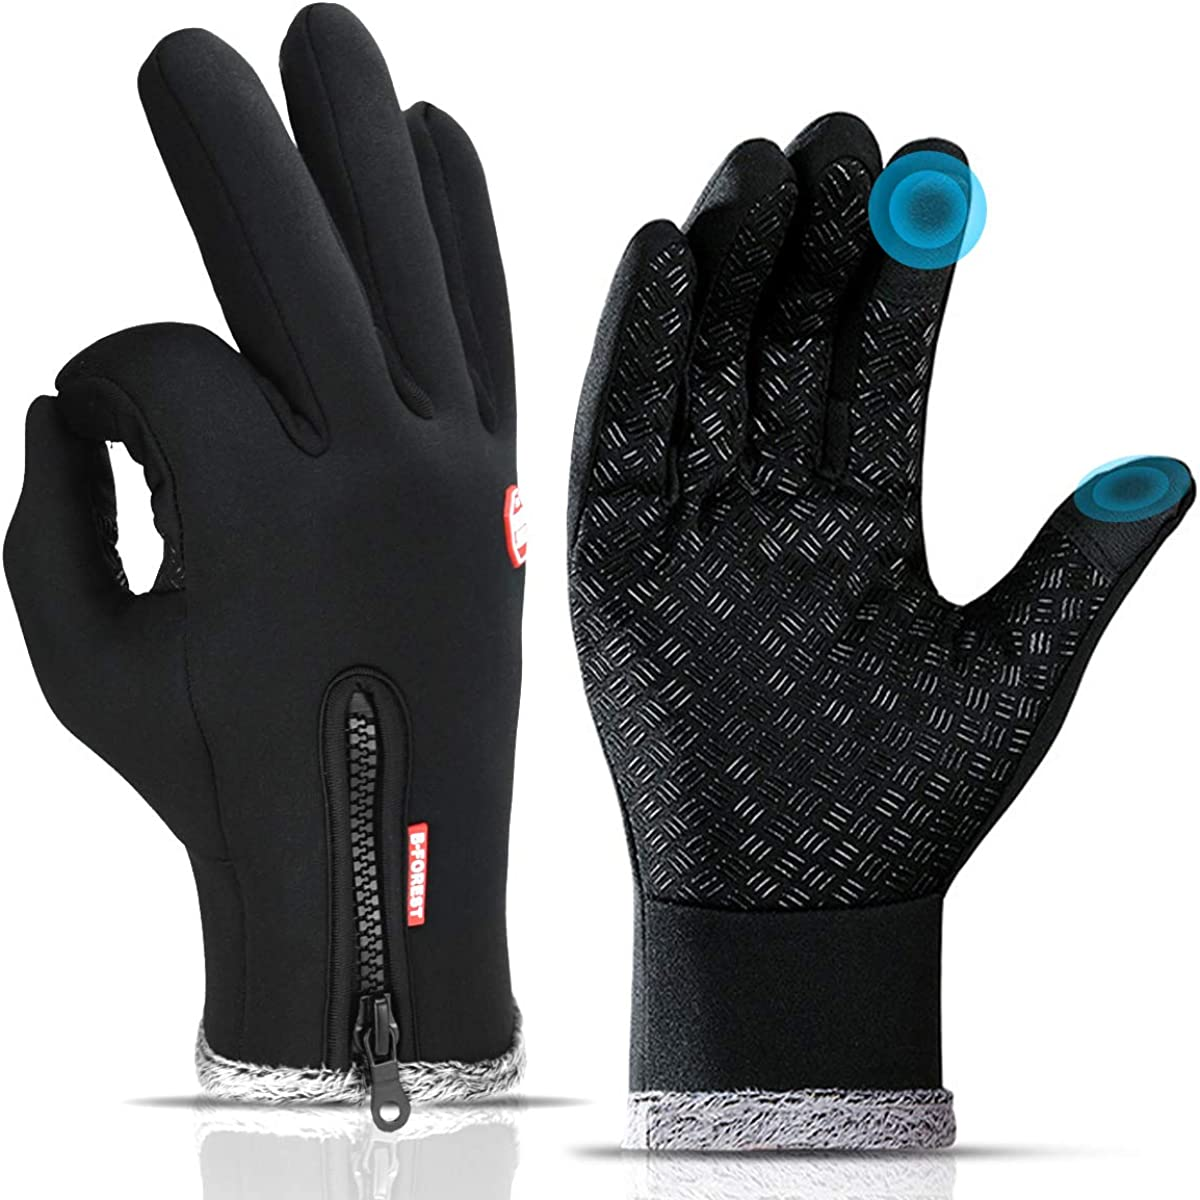 Winter Gloves Super sale Men Max 60% OFF Cycling Glove Screen Co Touch